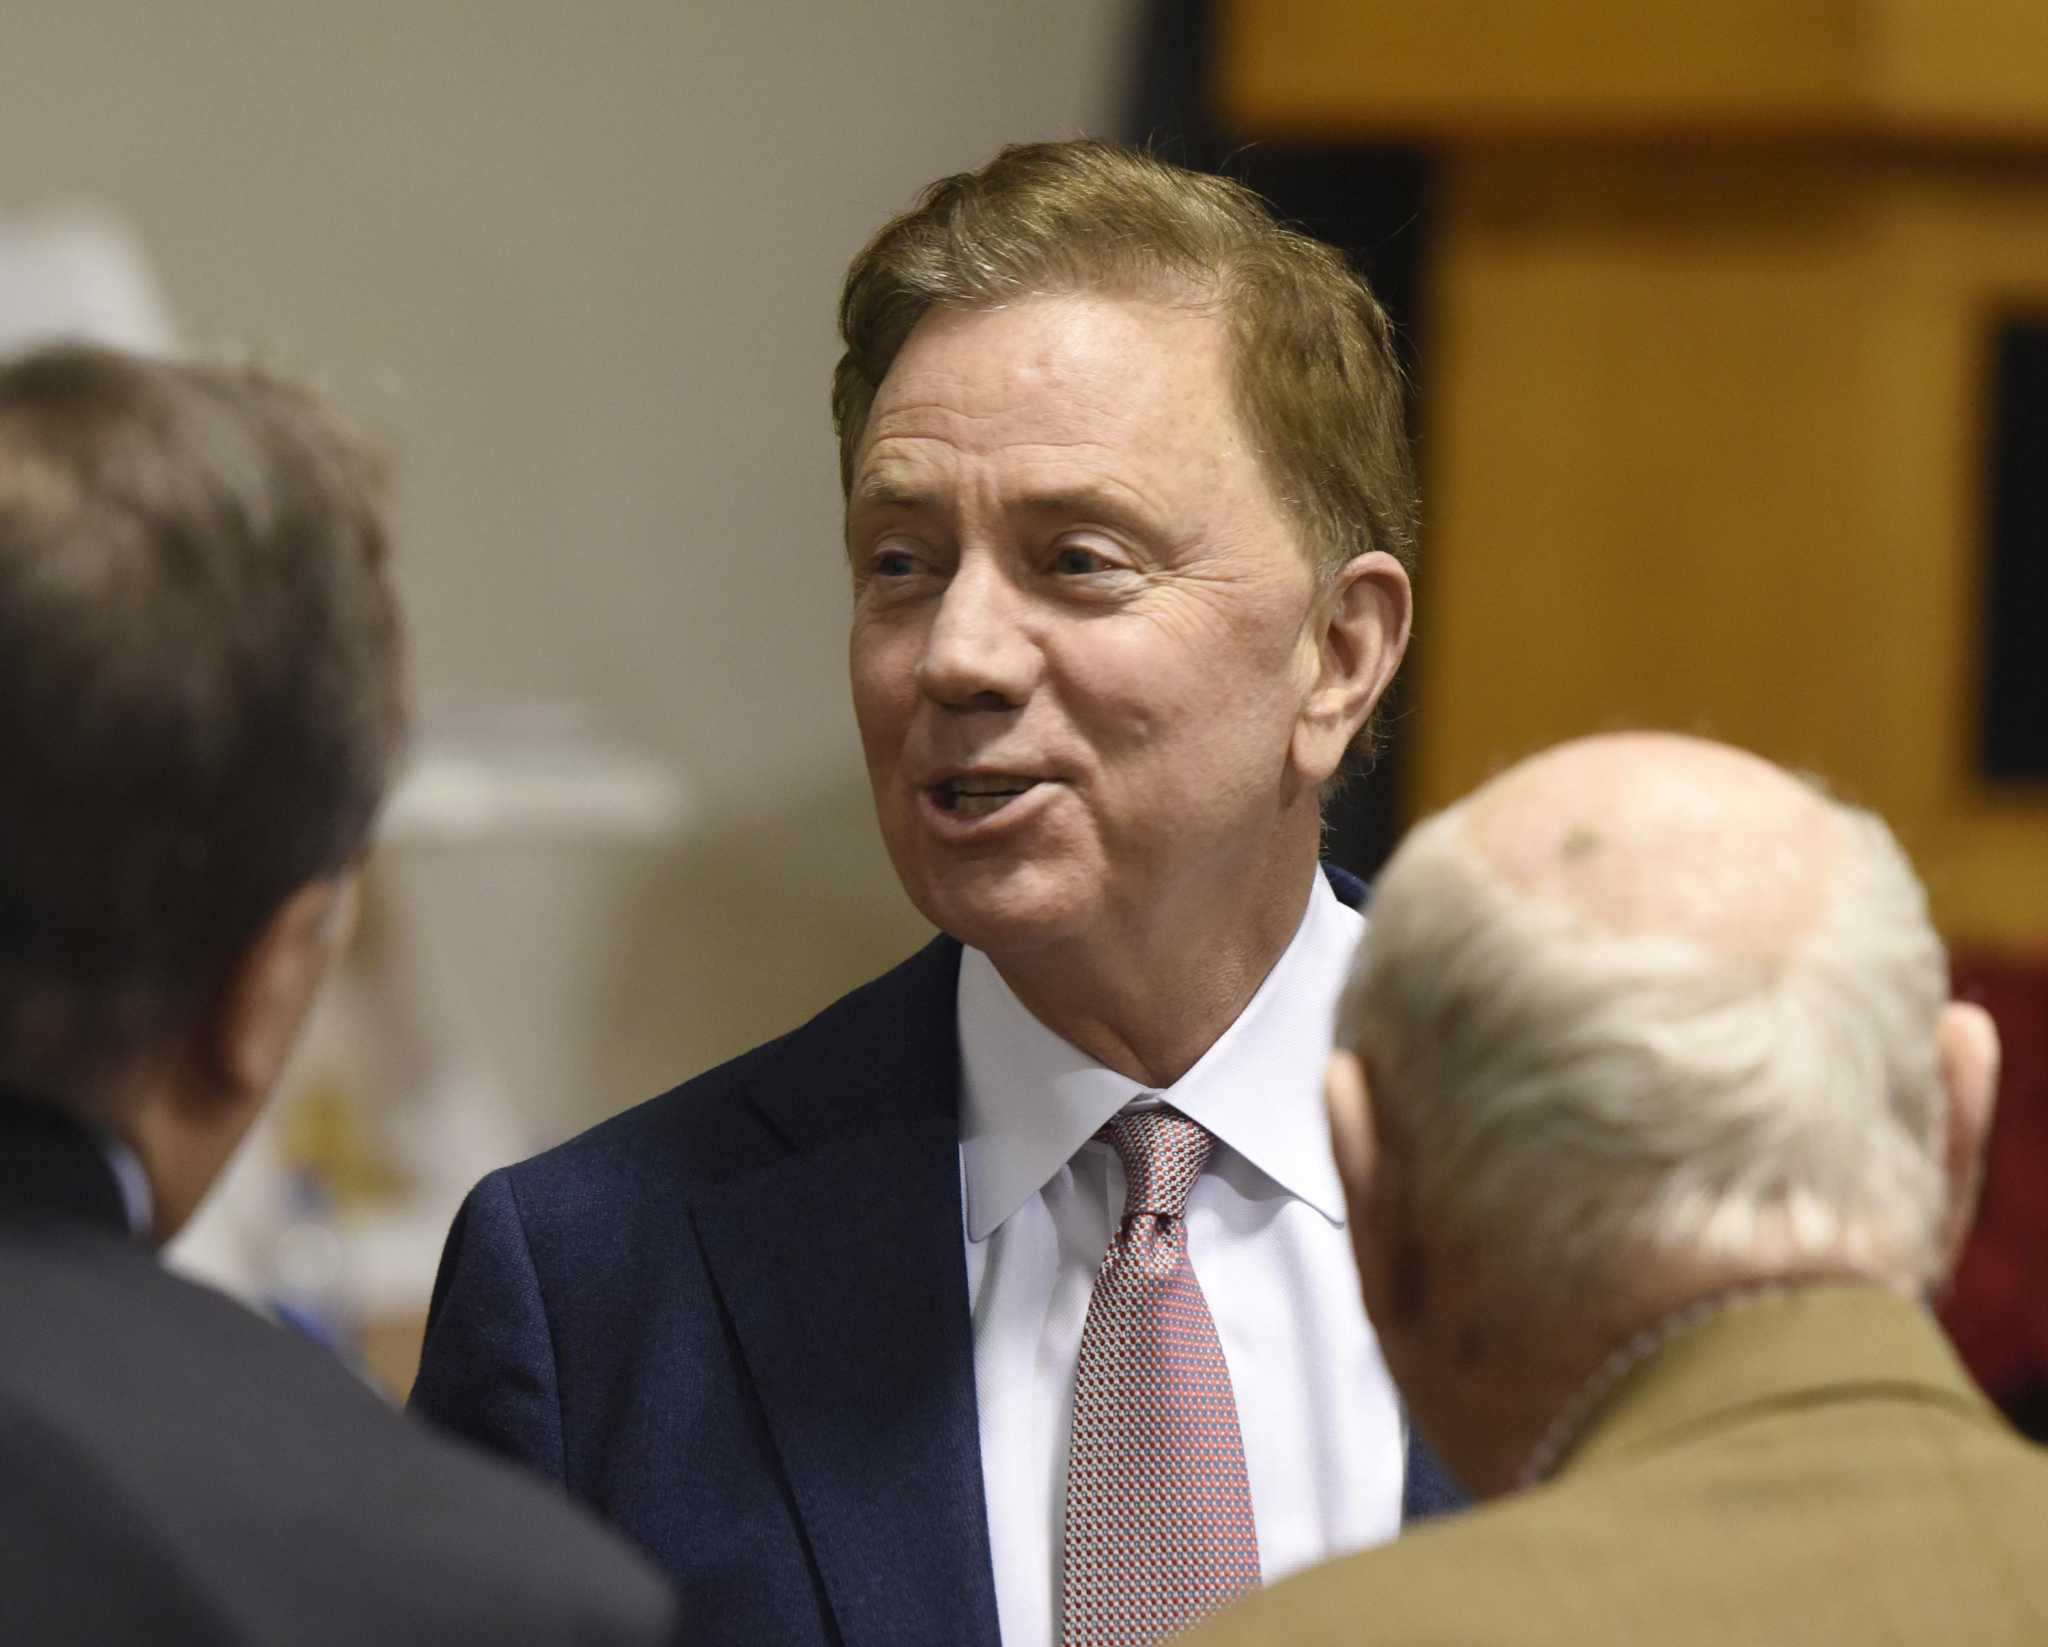 Lamont: 'I can't care about' declining popularity as first year nears end